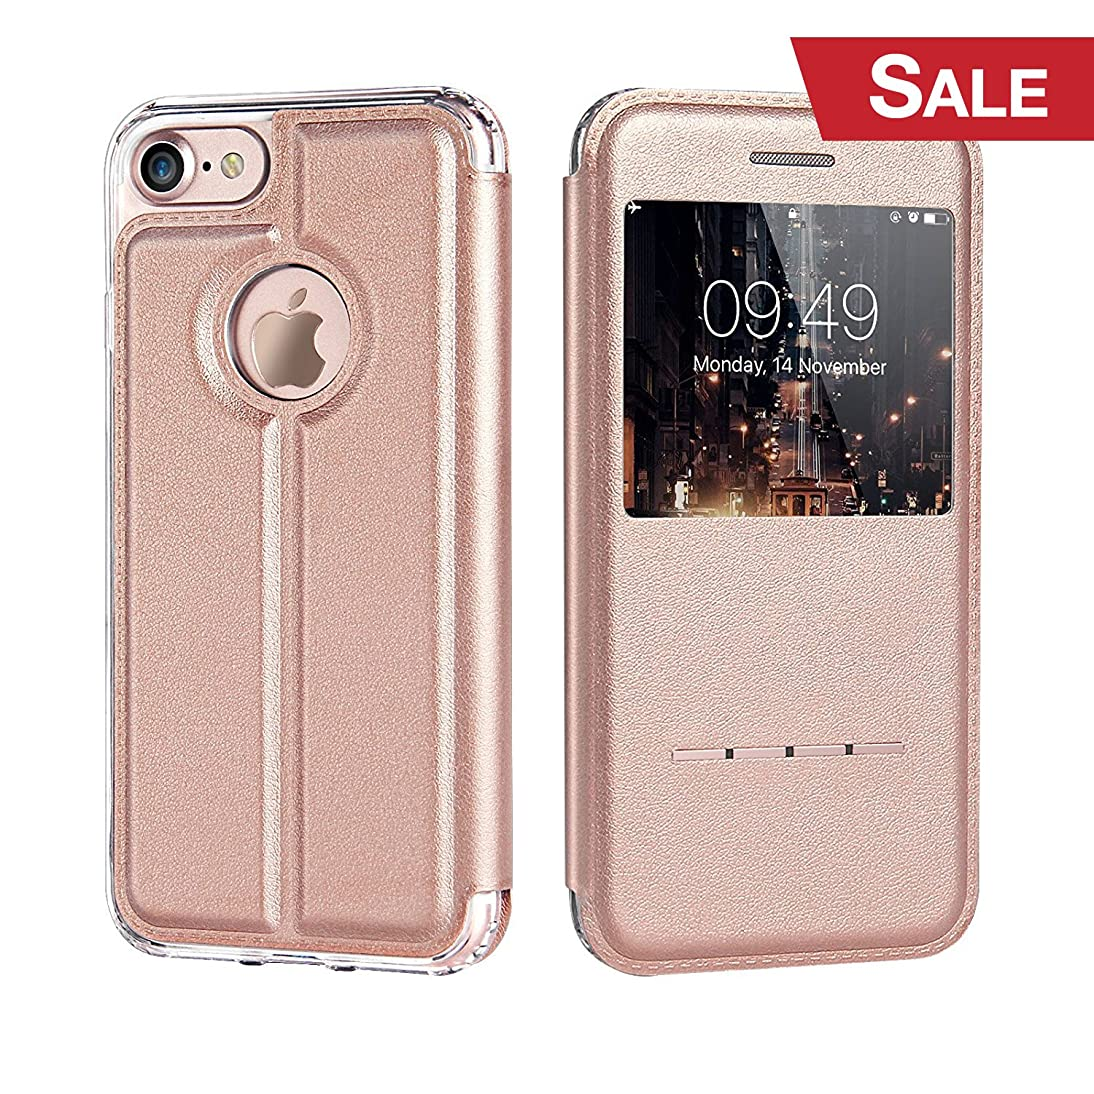 iPhone 8 Case, iVAPO iPhone 8 Cover with View Window Cover Leather Case with Stand and Metal Sensor iPhone Case for iPhone 8 iPhone 7 iPhone 6 4.7inch Rose Gold wuwt355696295445